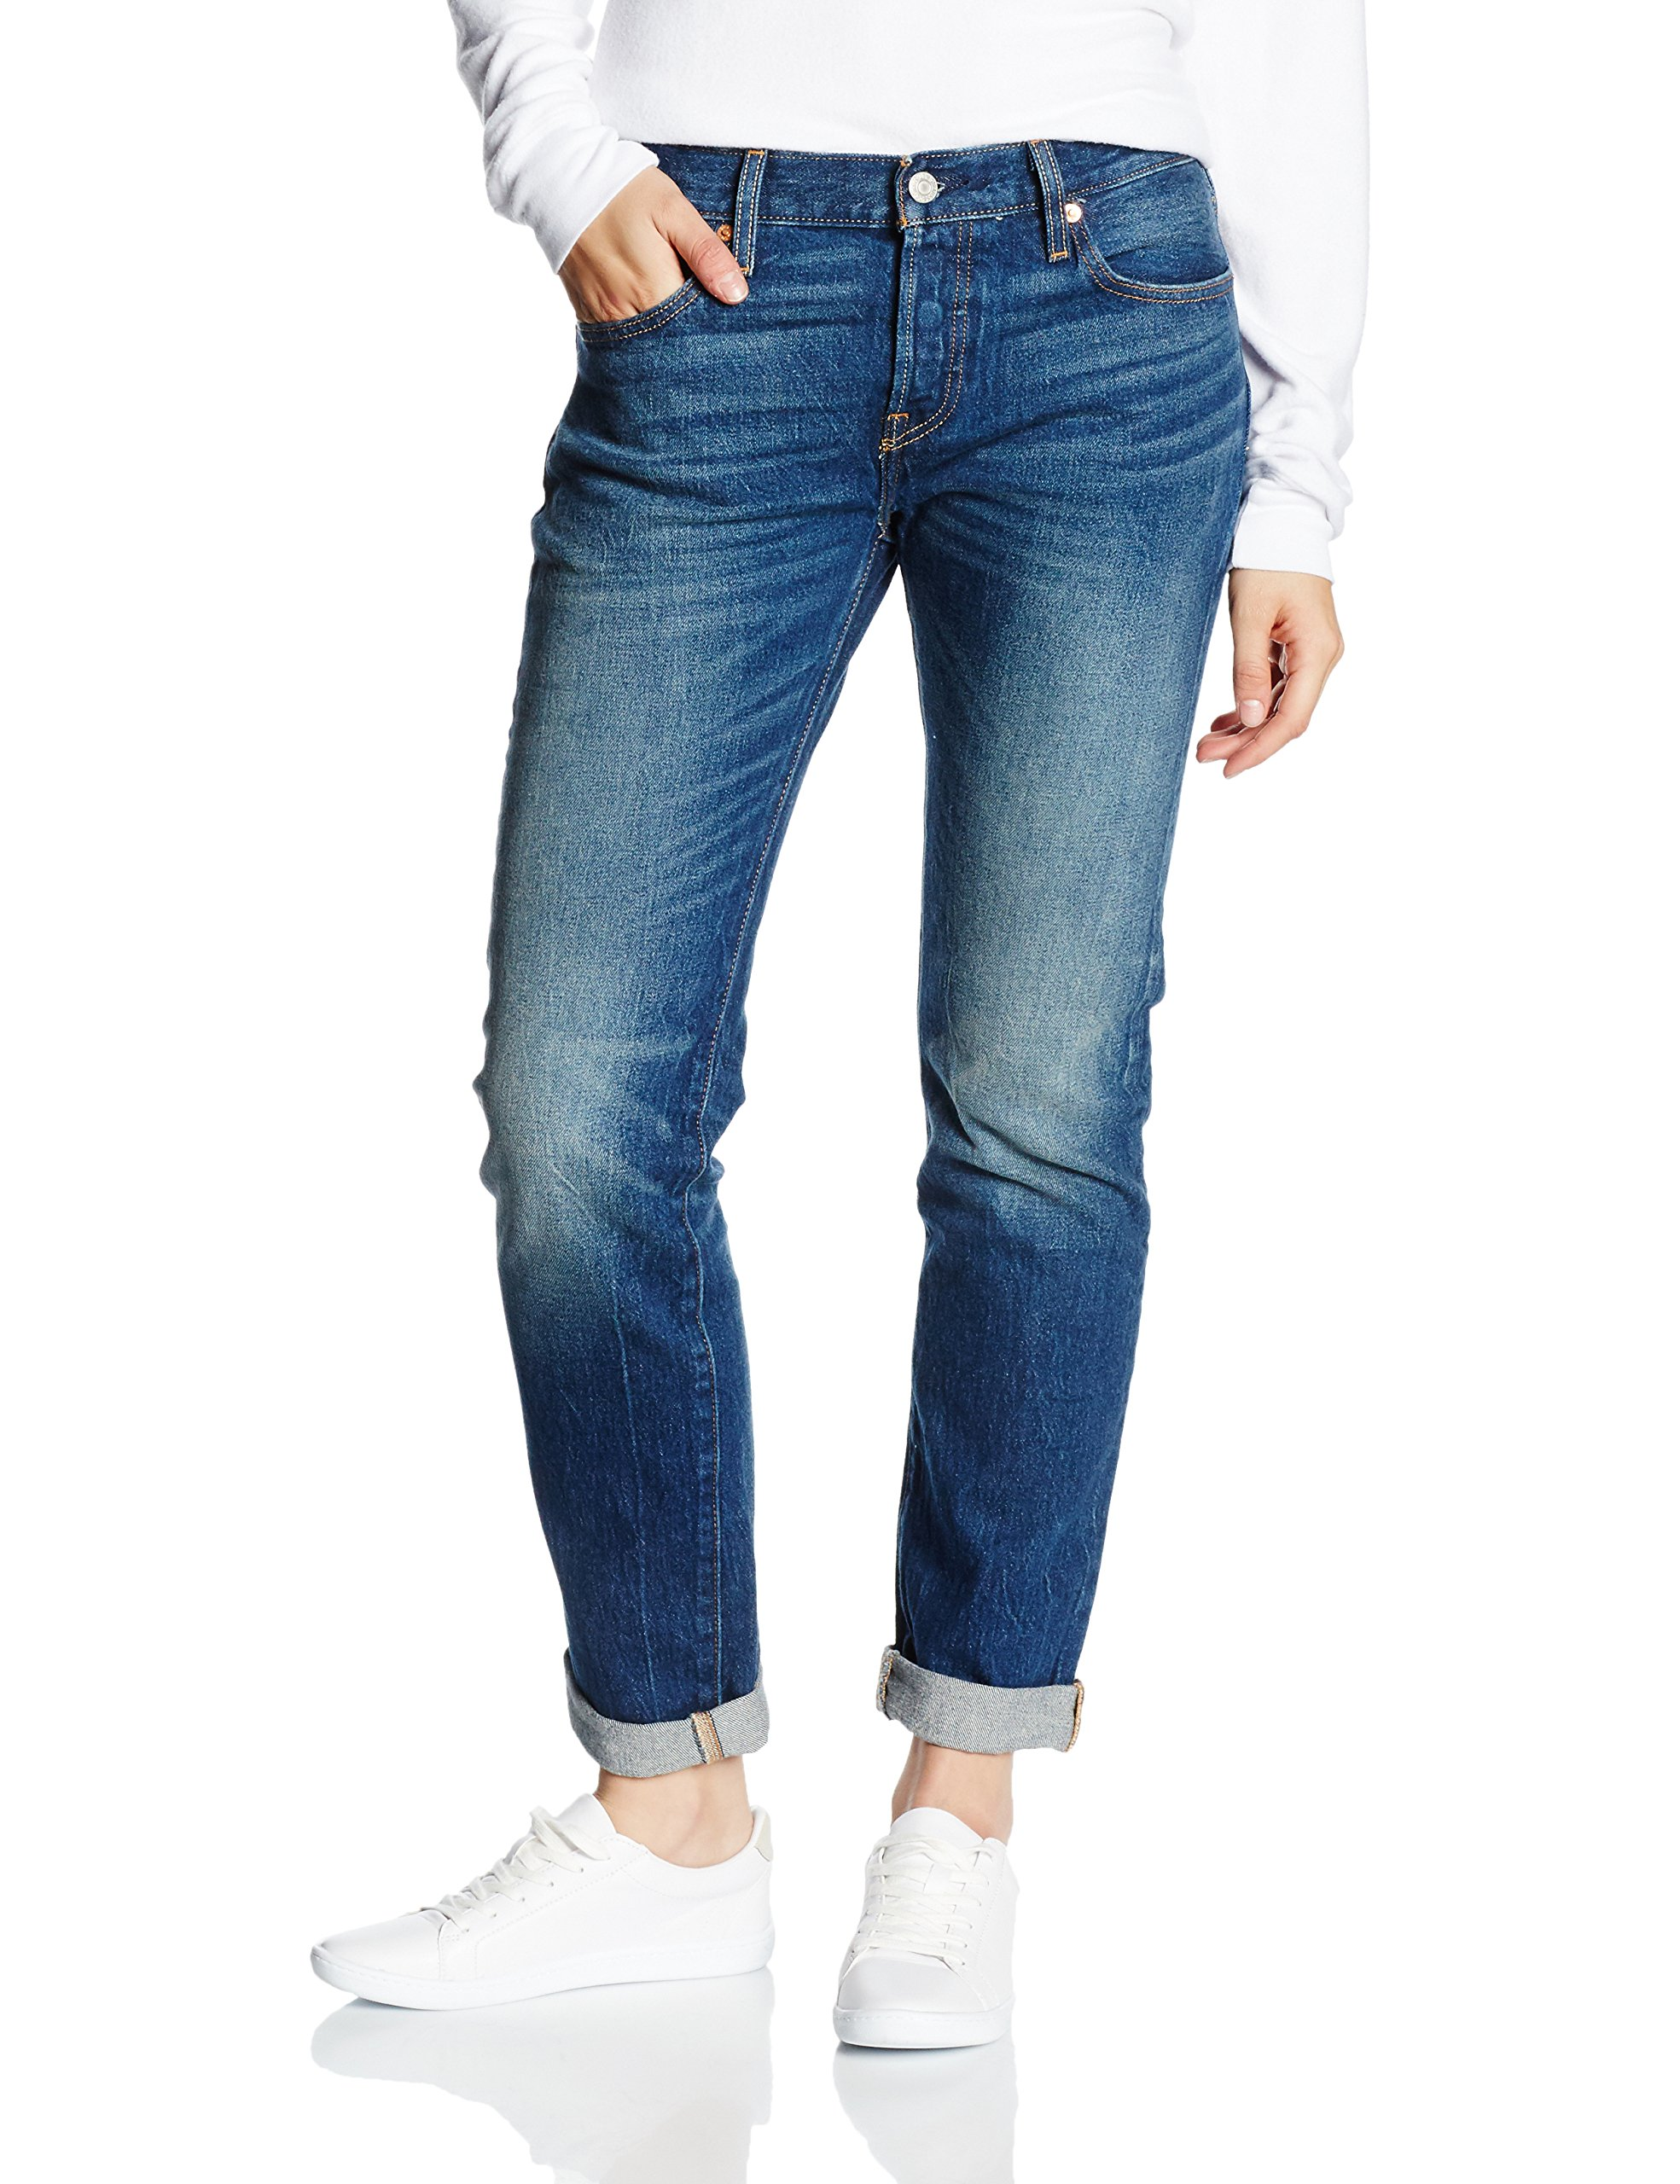 FemmeBleuroasted 501 CtJeans Levi's l36taille Fabricant31 IndigoW31 Y67vbgfy